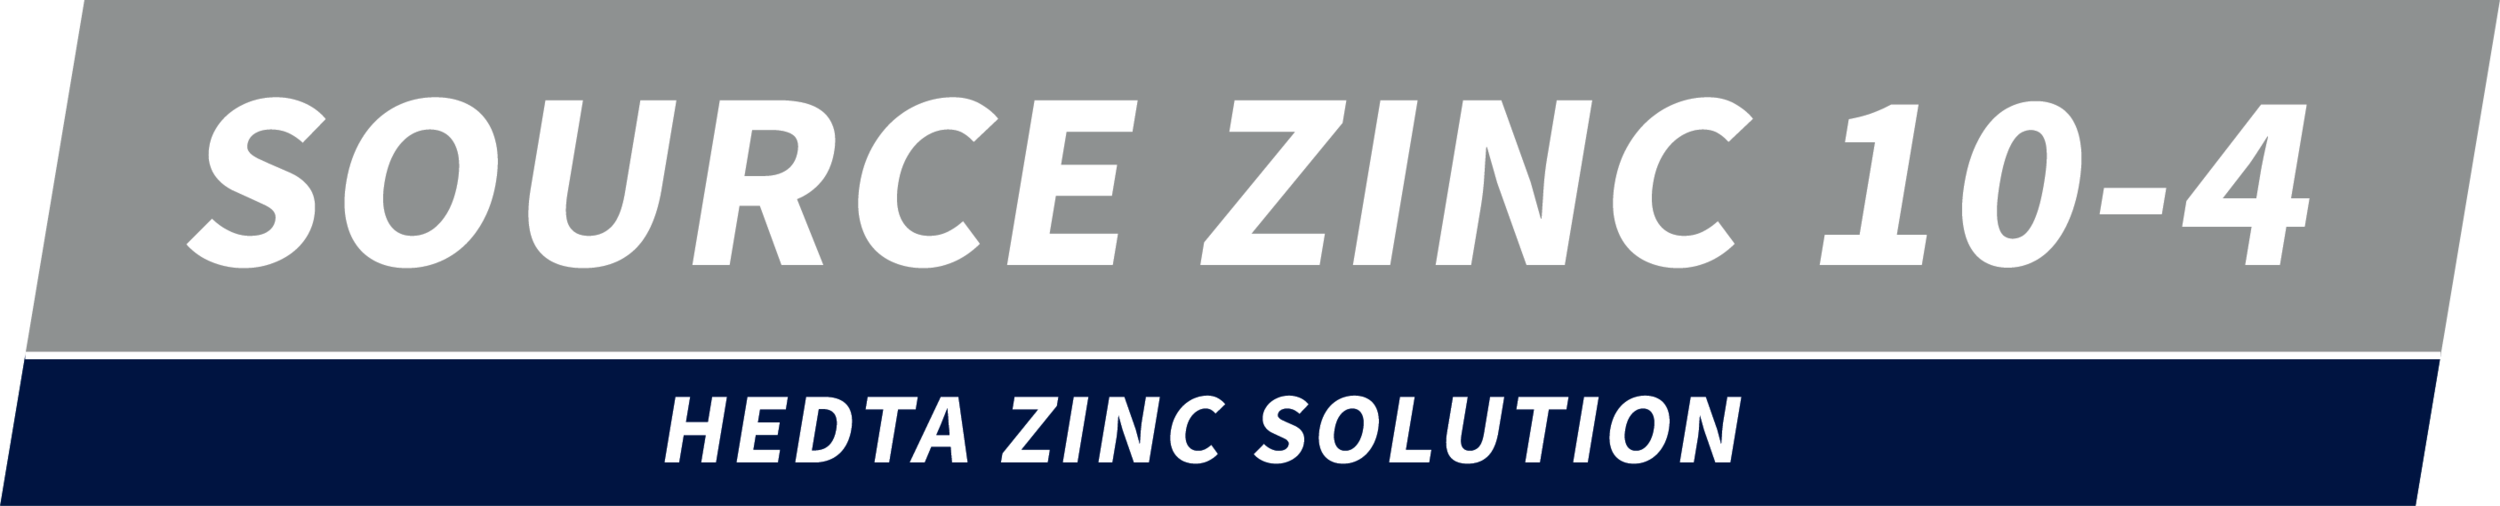 Source_Zinc_10-4_microSource_ProductLogos-07.png